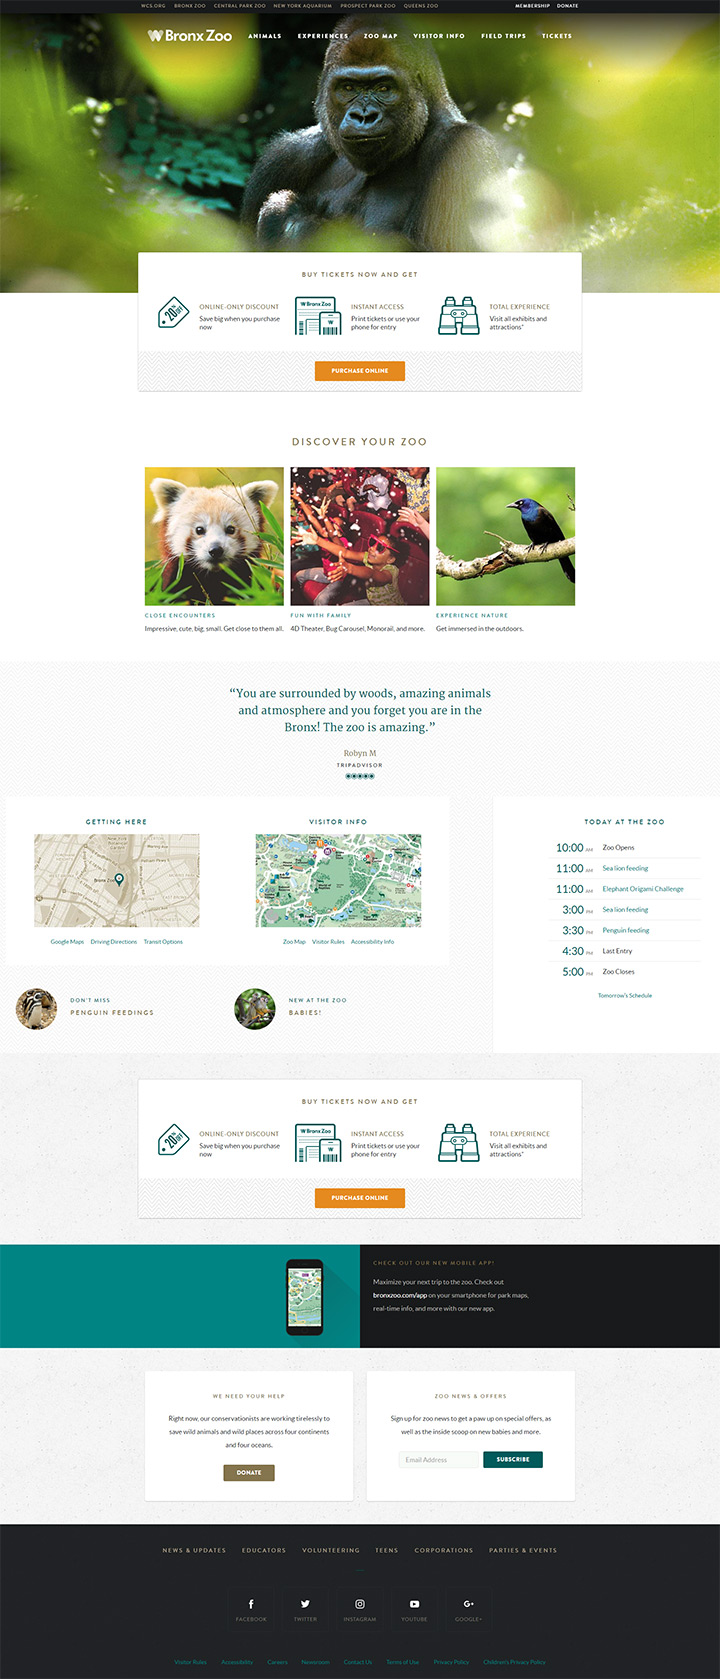 bronx zoo website